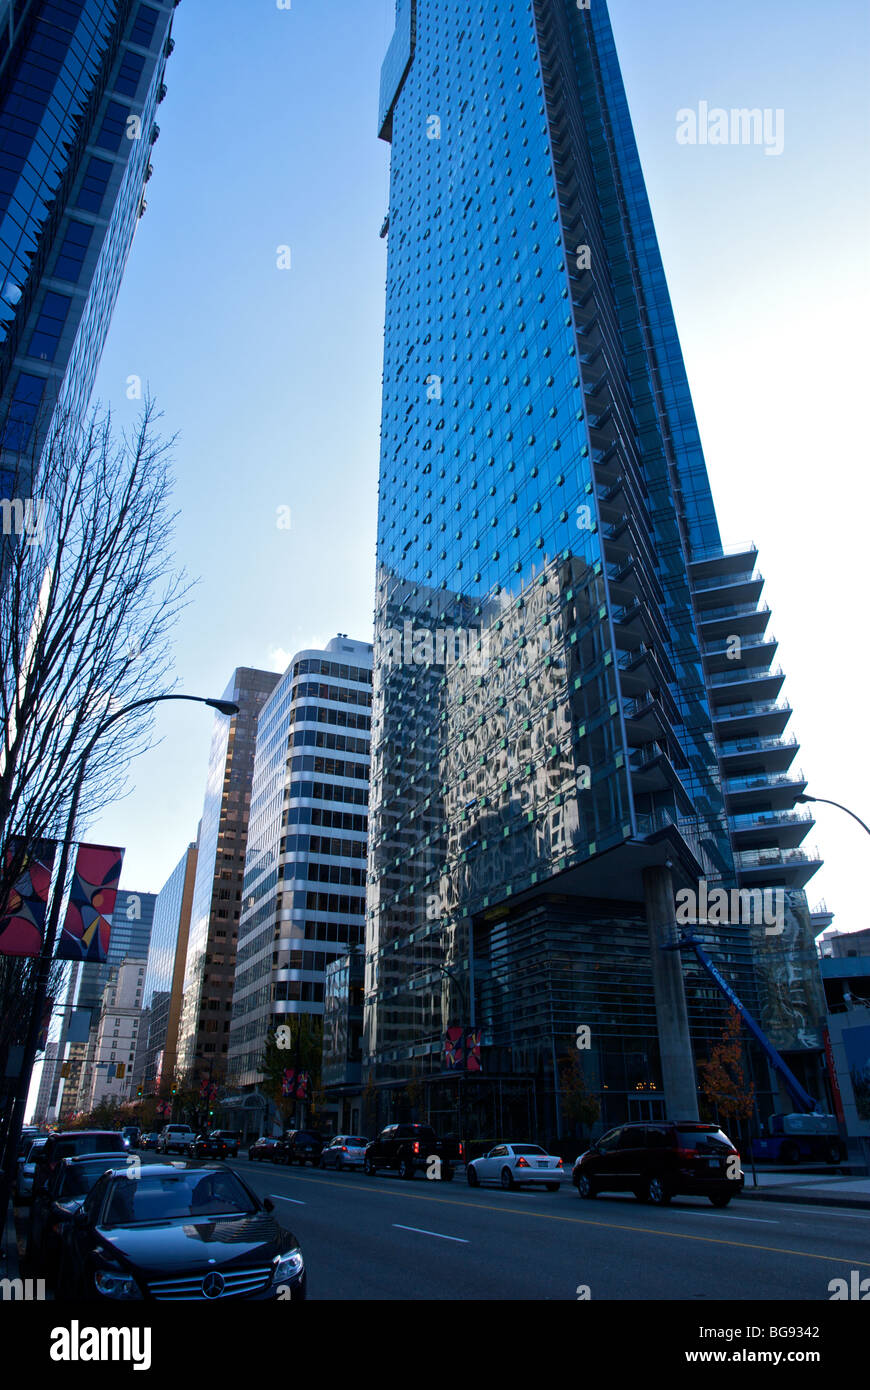 Shangri La Hotel In Downtown Vancouver Stock Photo 27244898 Alamy